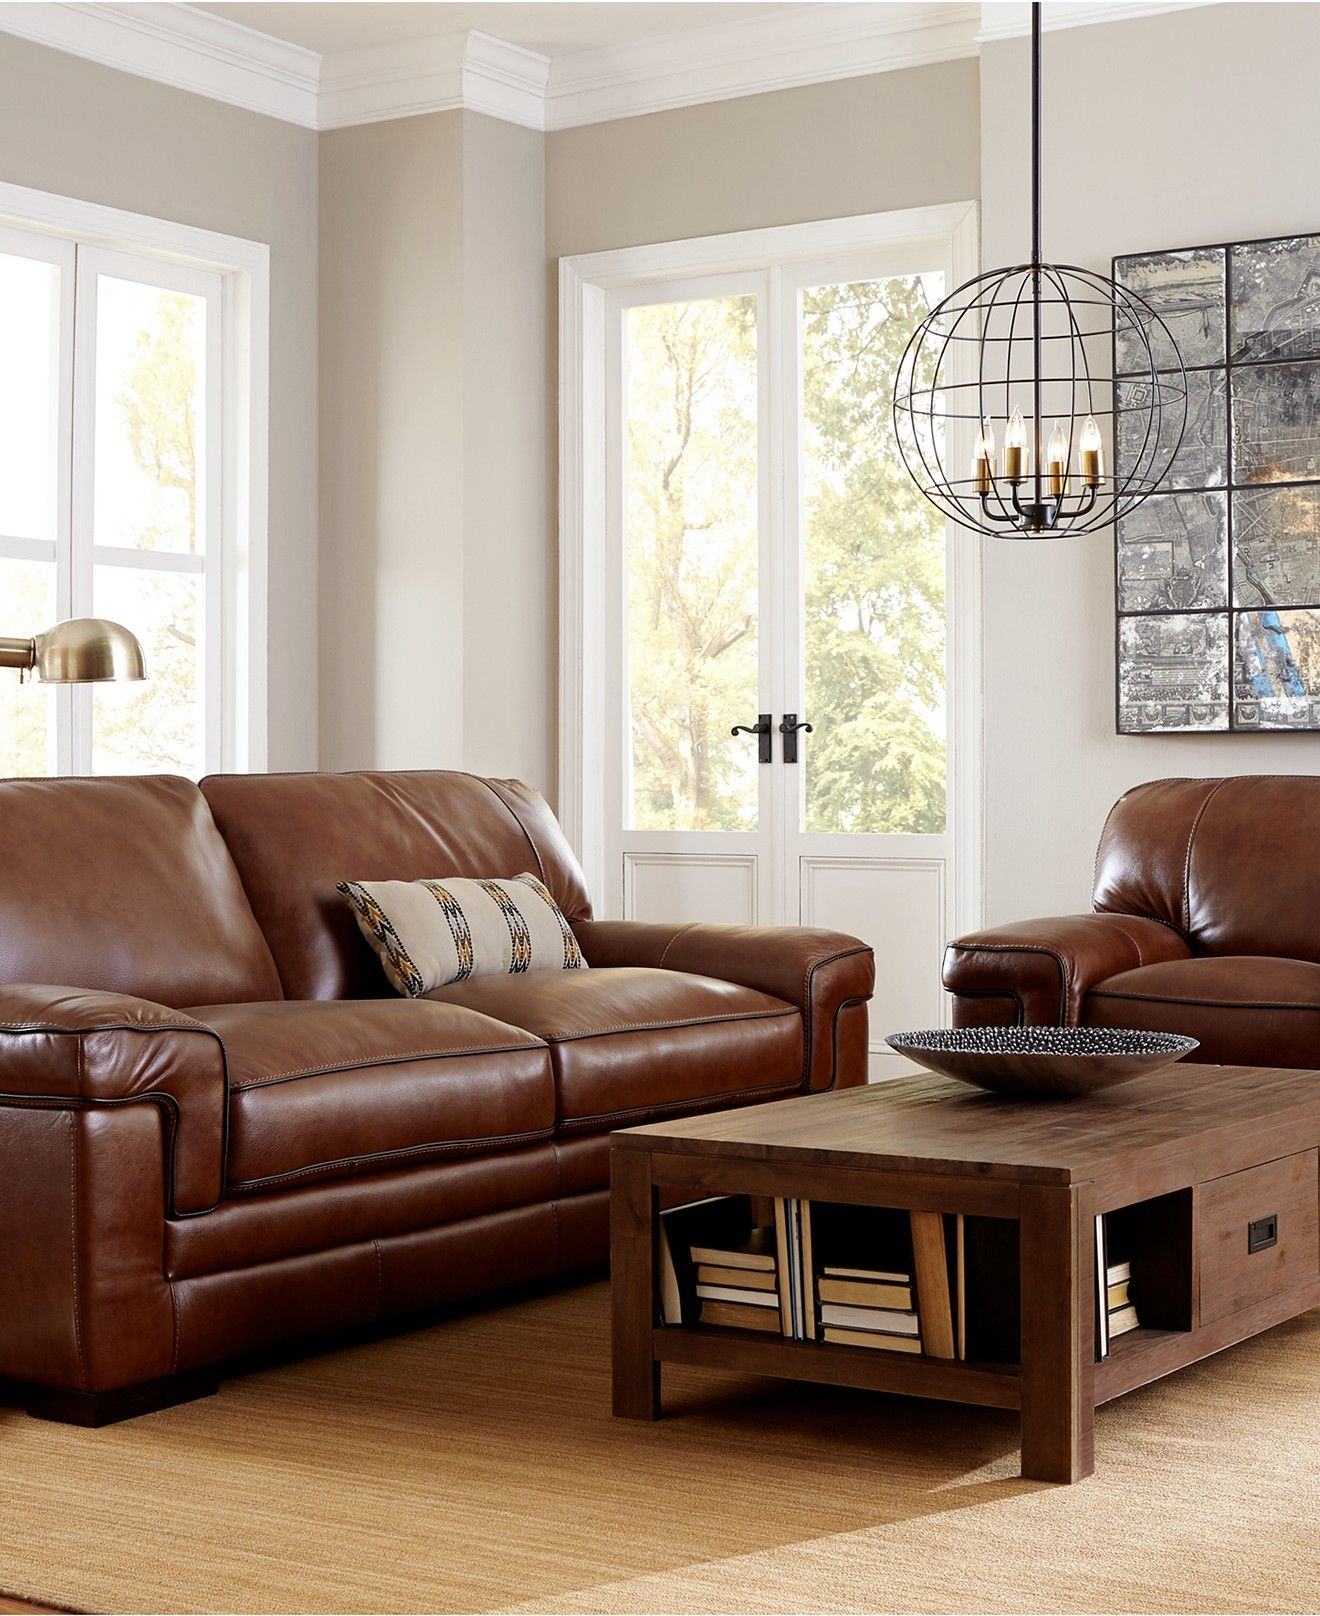 Myars Leather Sofa Collection | study bar lounge | Leather ...